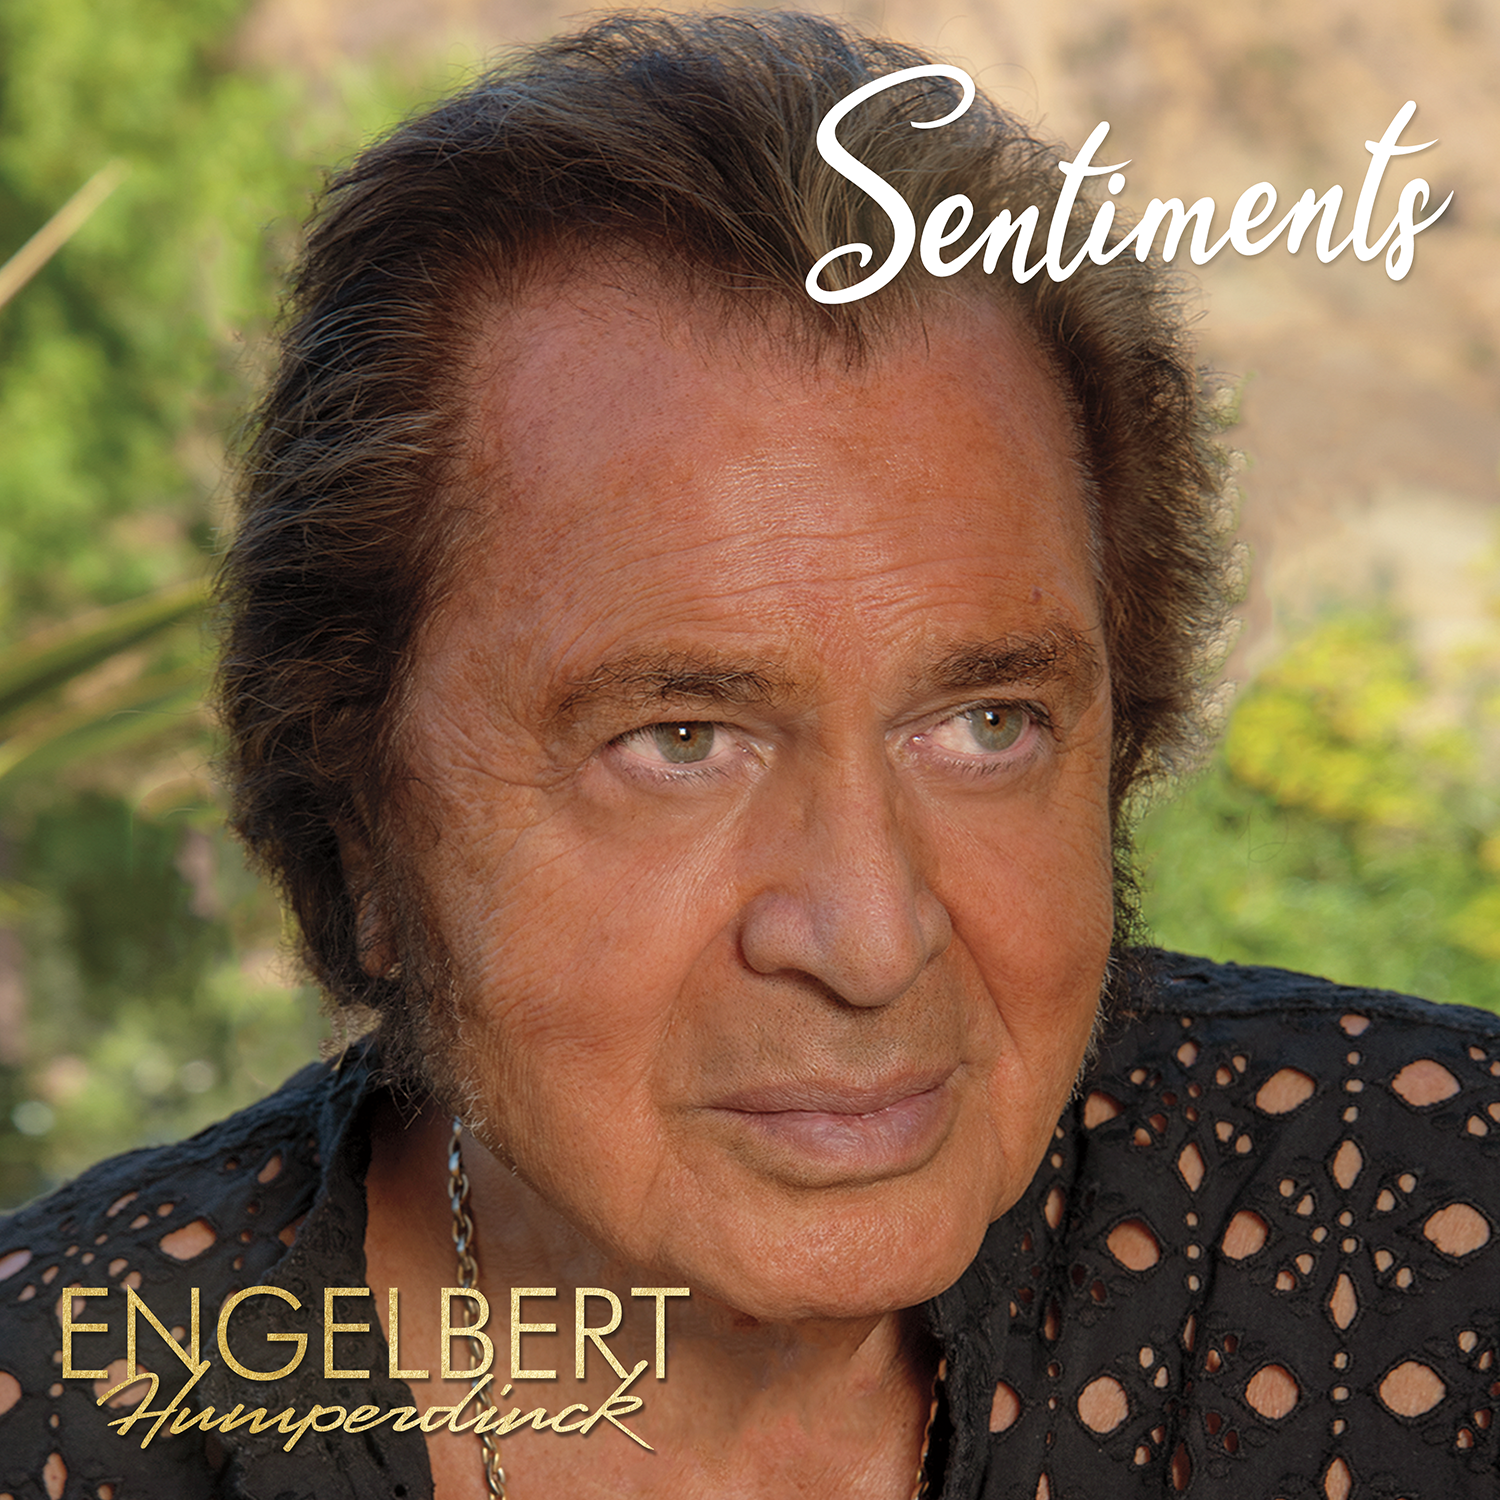 Engelbert Humperdinck Returns with the Release of New EP, Sentiments